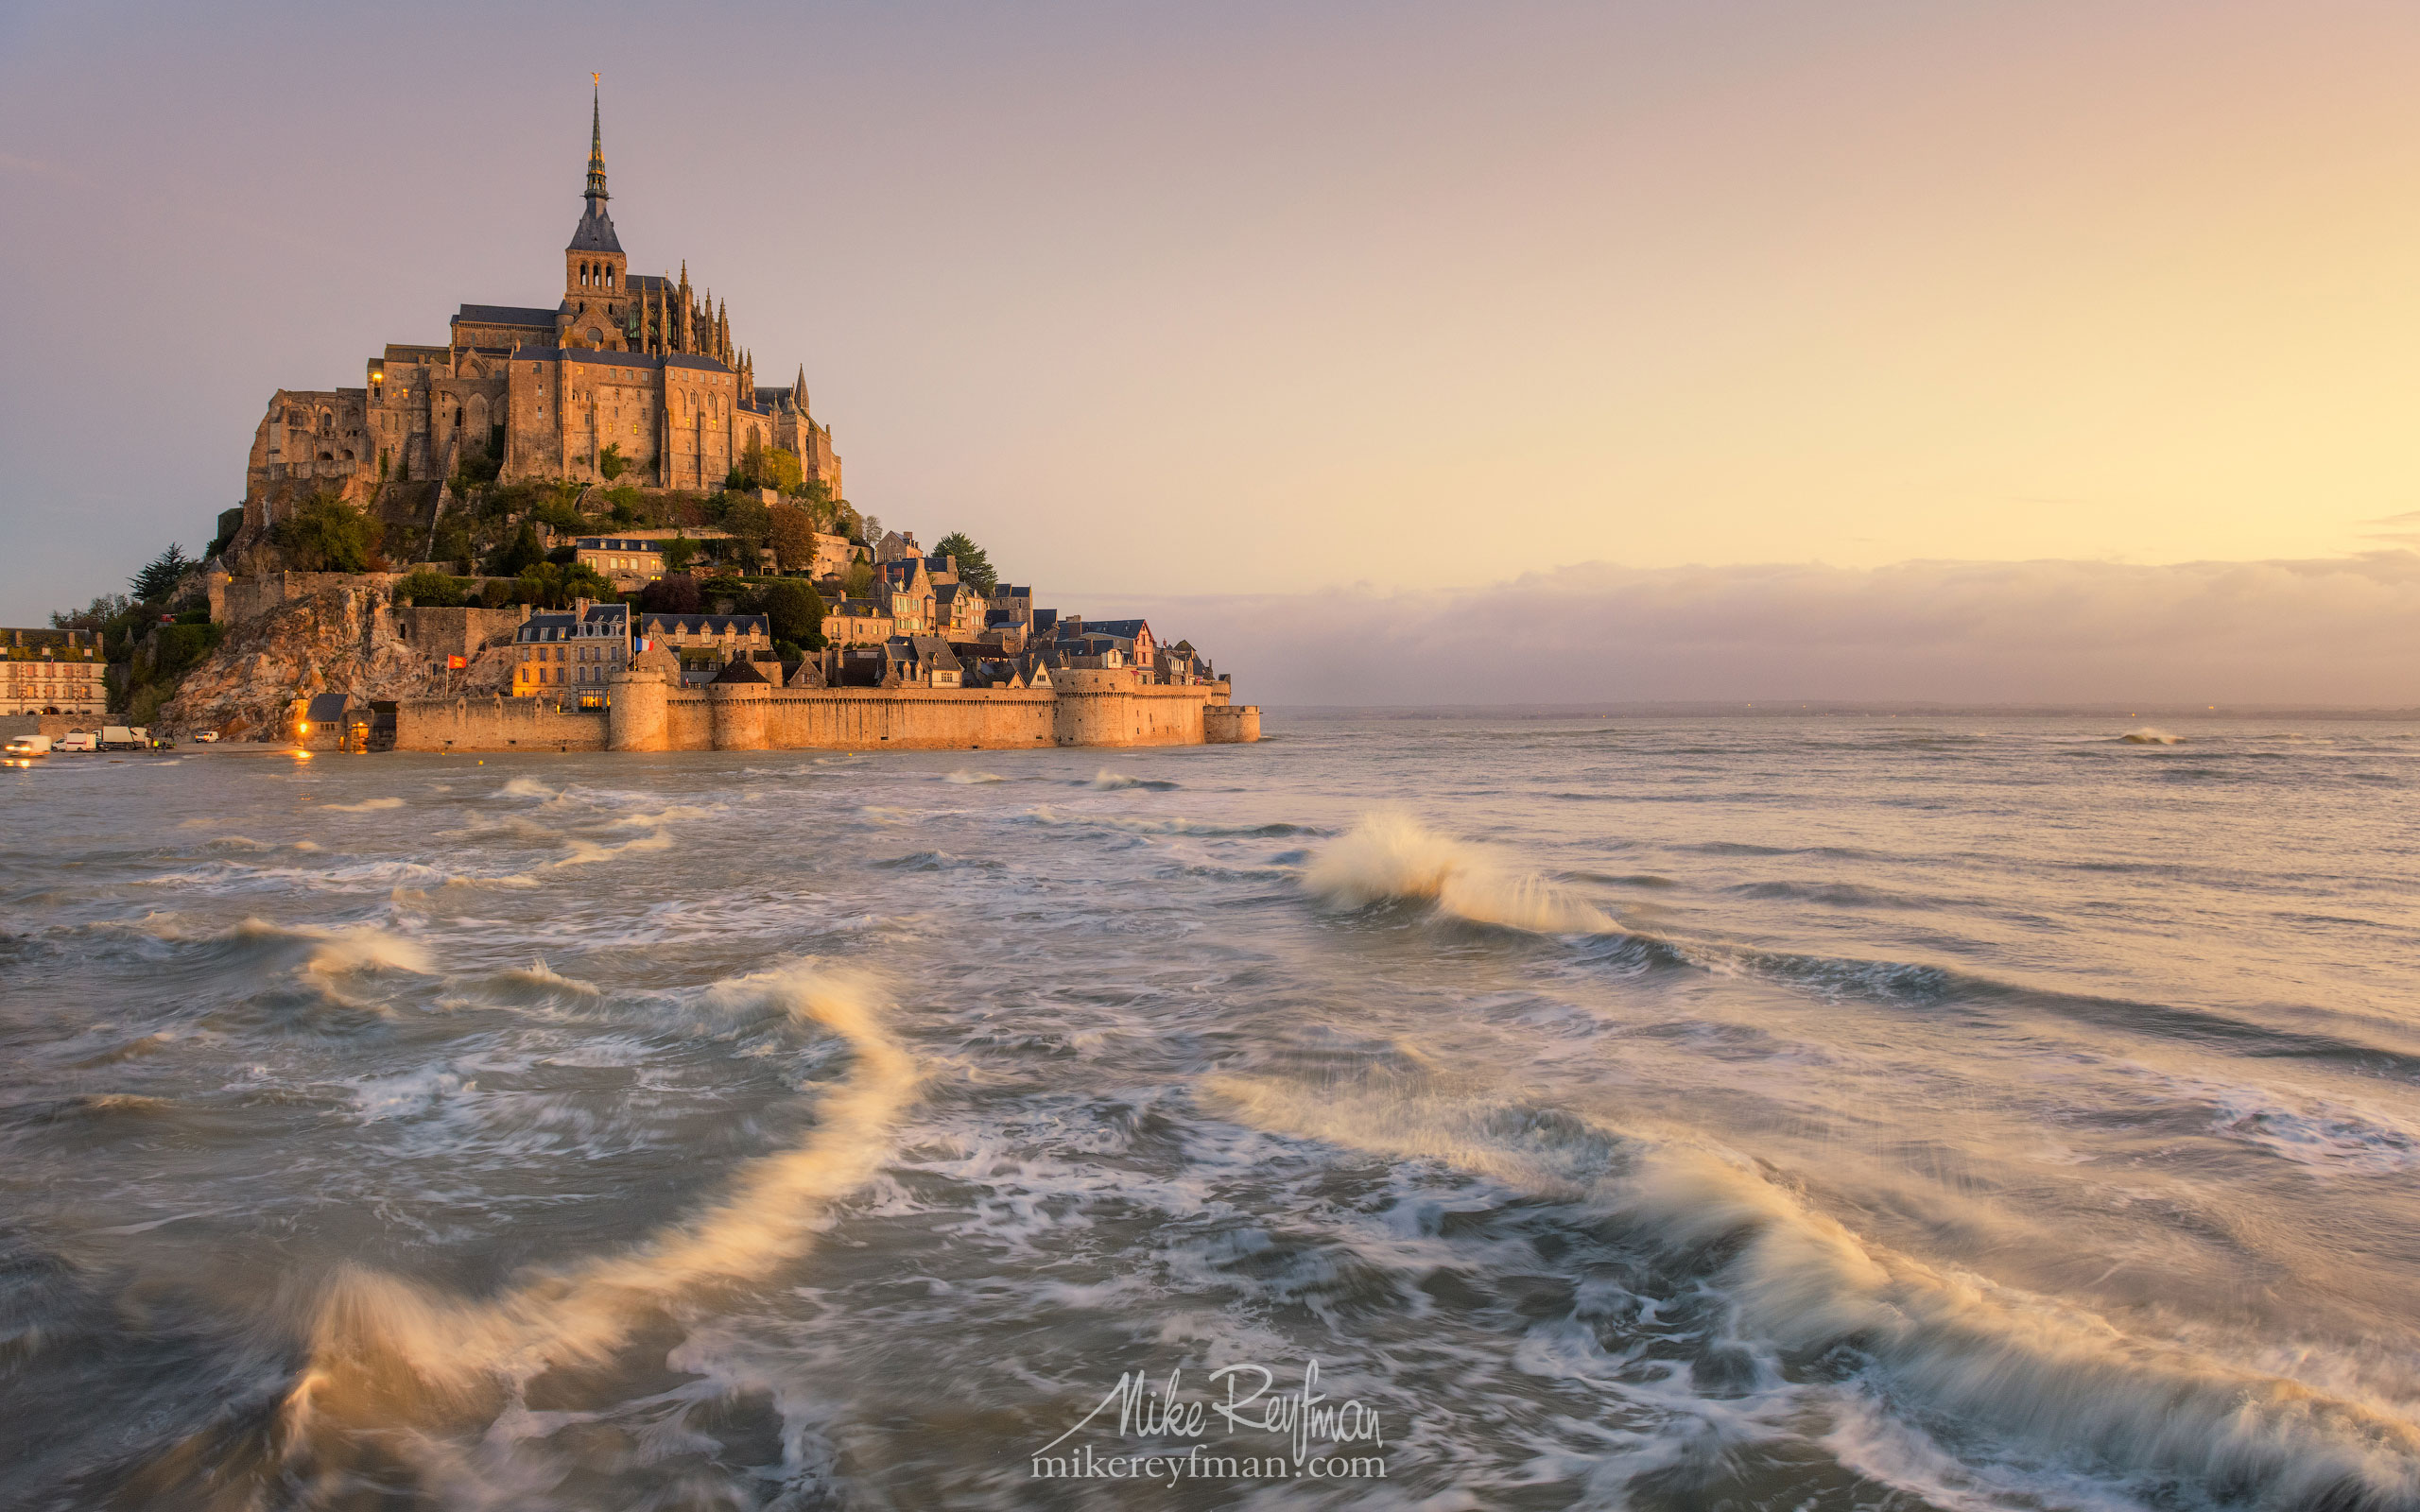 Le Mont-Saint-Michel Island and Benedictine Abbey. Normandy, France SM_MR50A1278 - Le Mont Saint Michel Island and Benedictine Abbey, Normandy, France - Mike Reyfman Photography